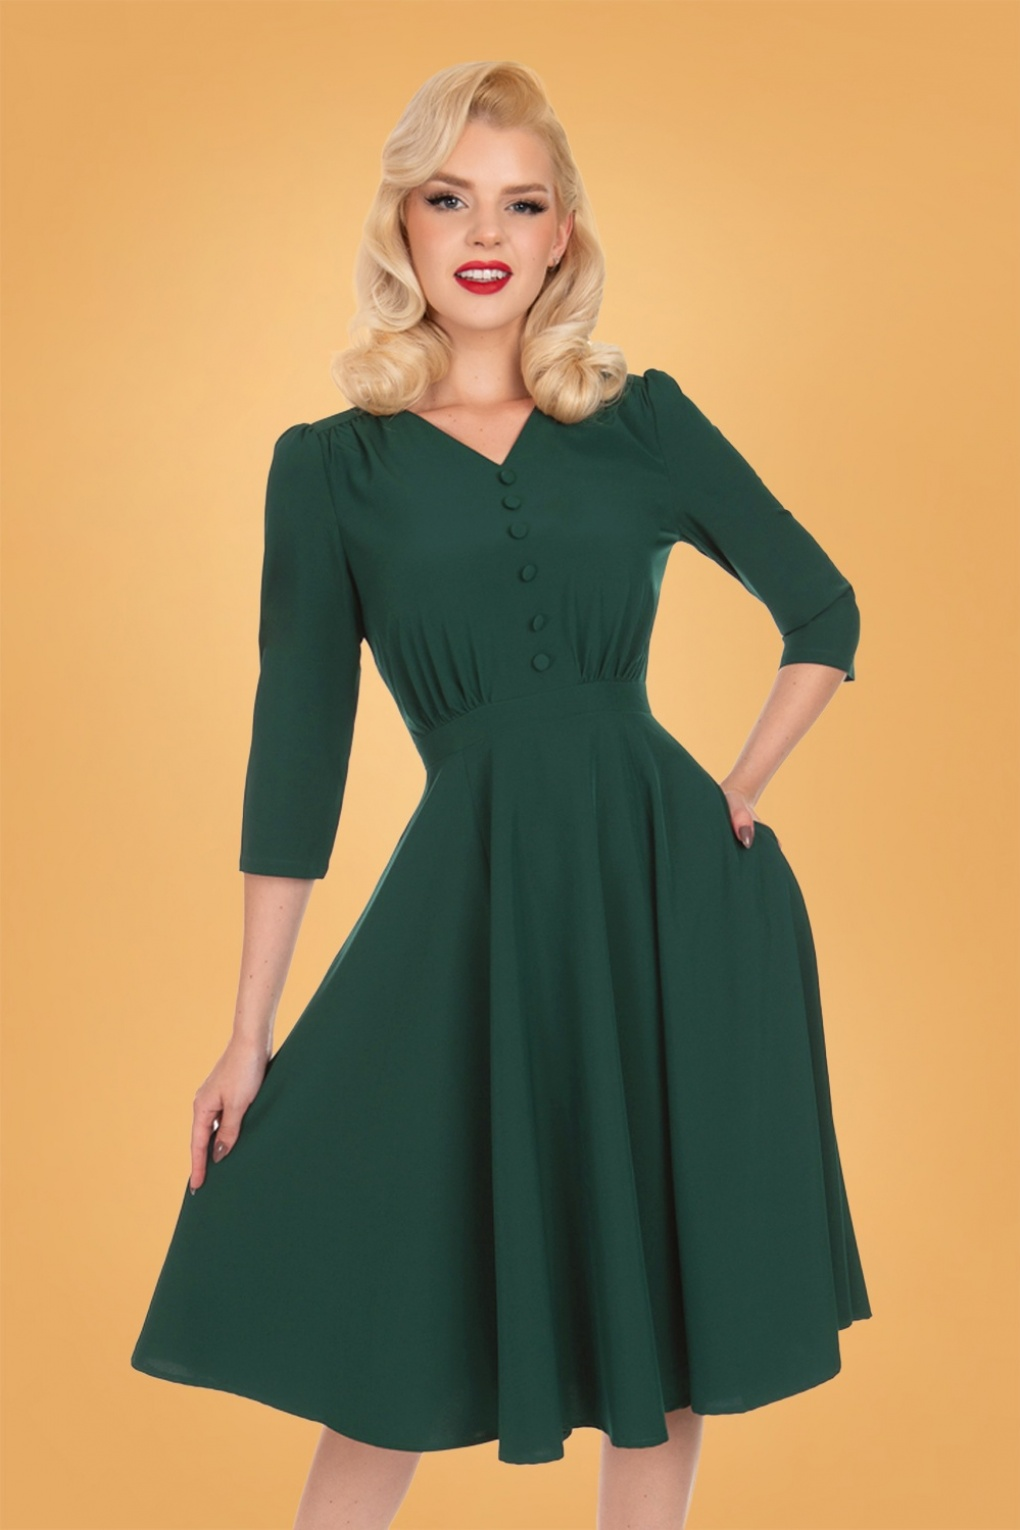 Vintage Style Dresses | Vintage Inspired Dresses 50s Verde Swing Dress in Dark Green £53.29 AT vintagedancer.com